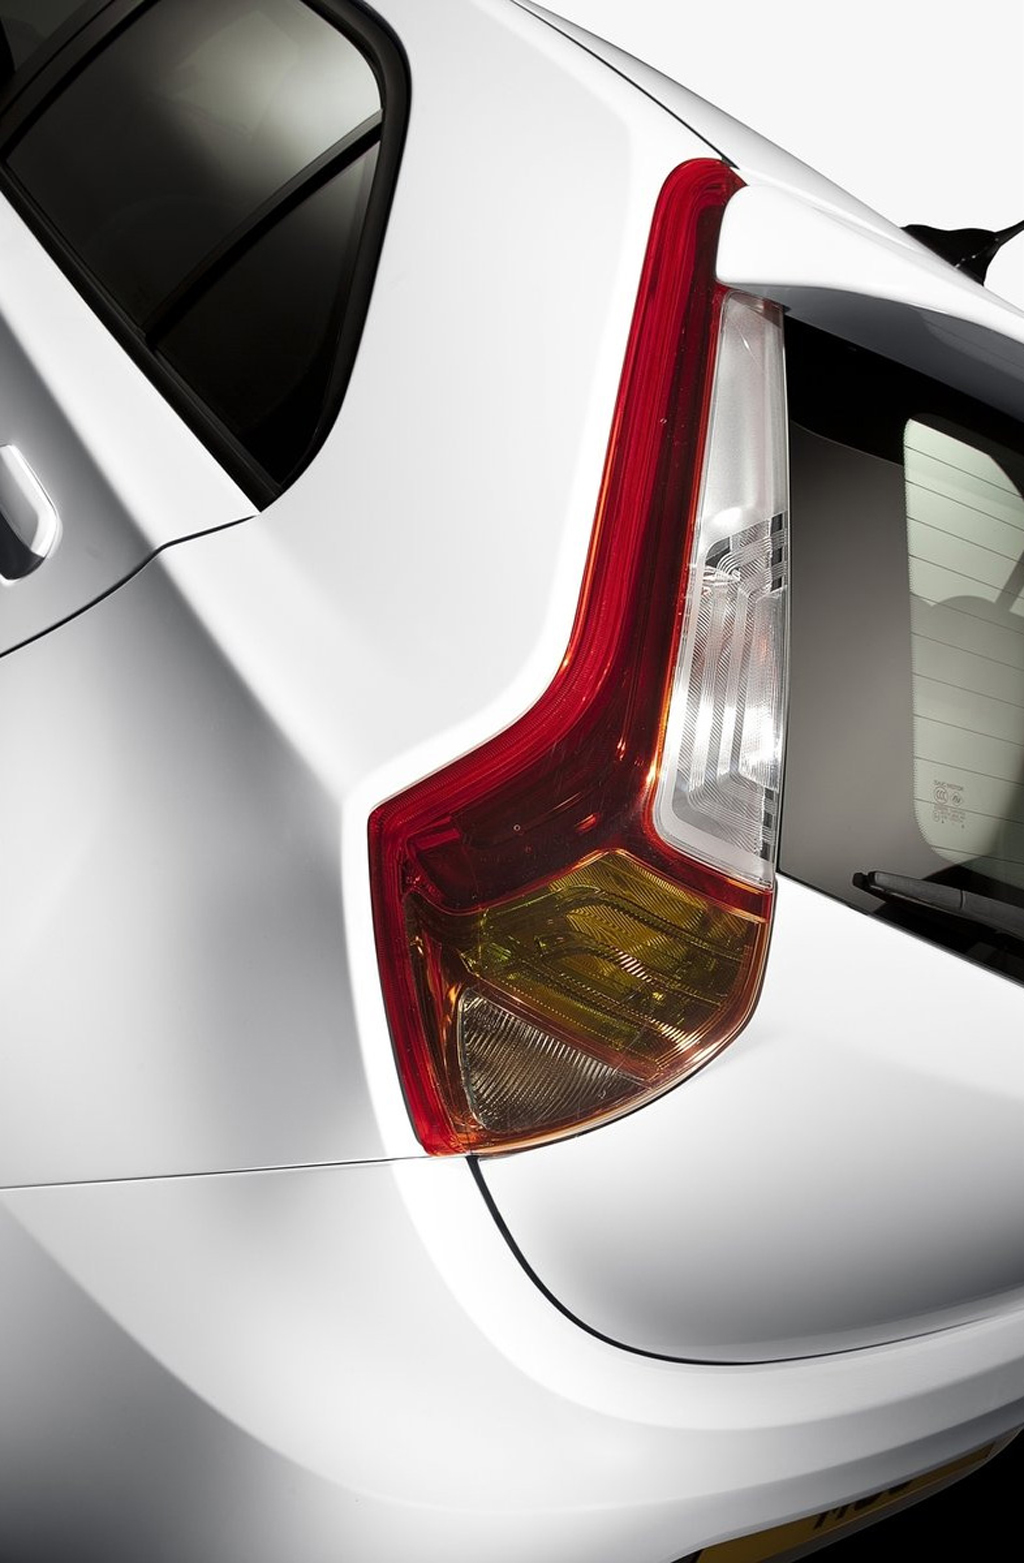 2014 MG 3 3 2014 MG 3 Details